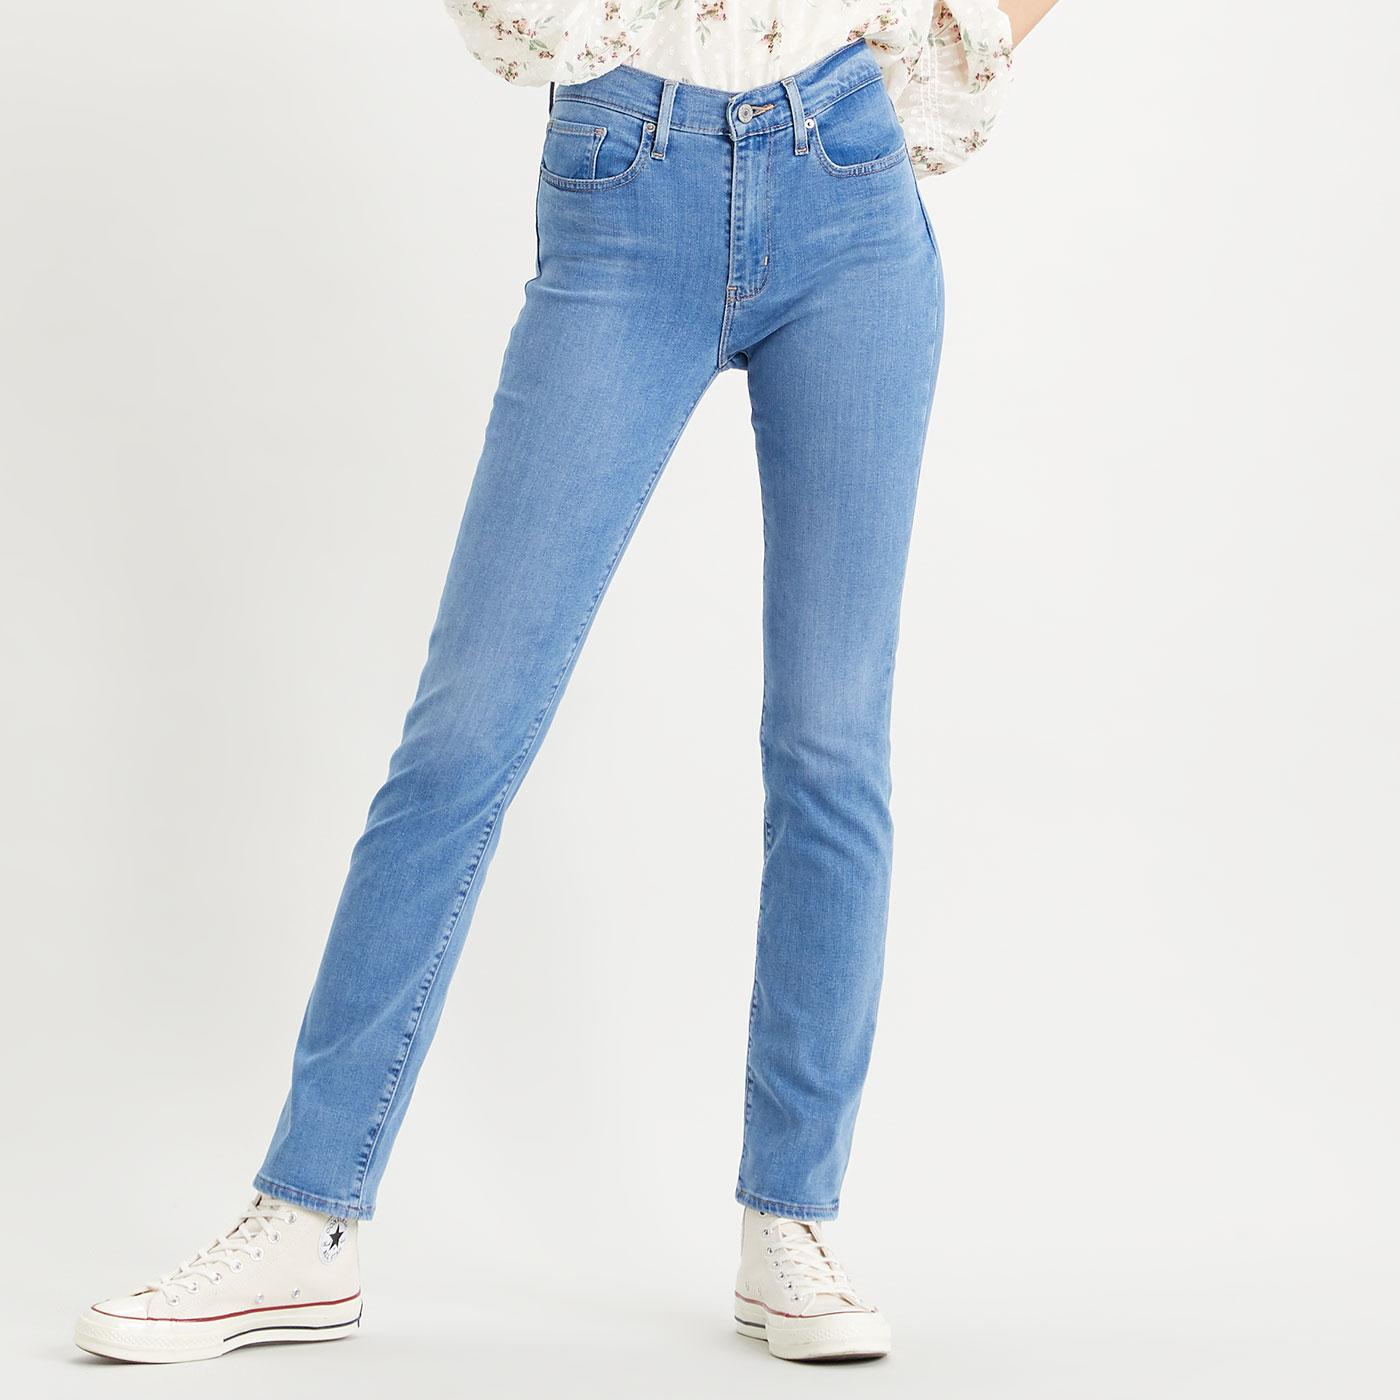 LEVI'S 724 High Rise Straight Jeans - Rio Chill